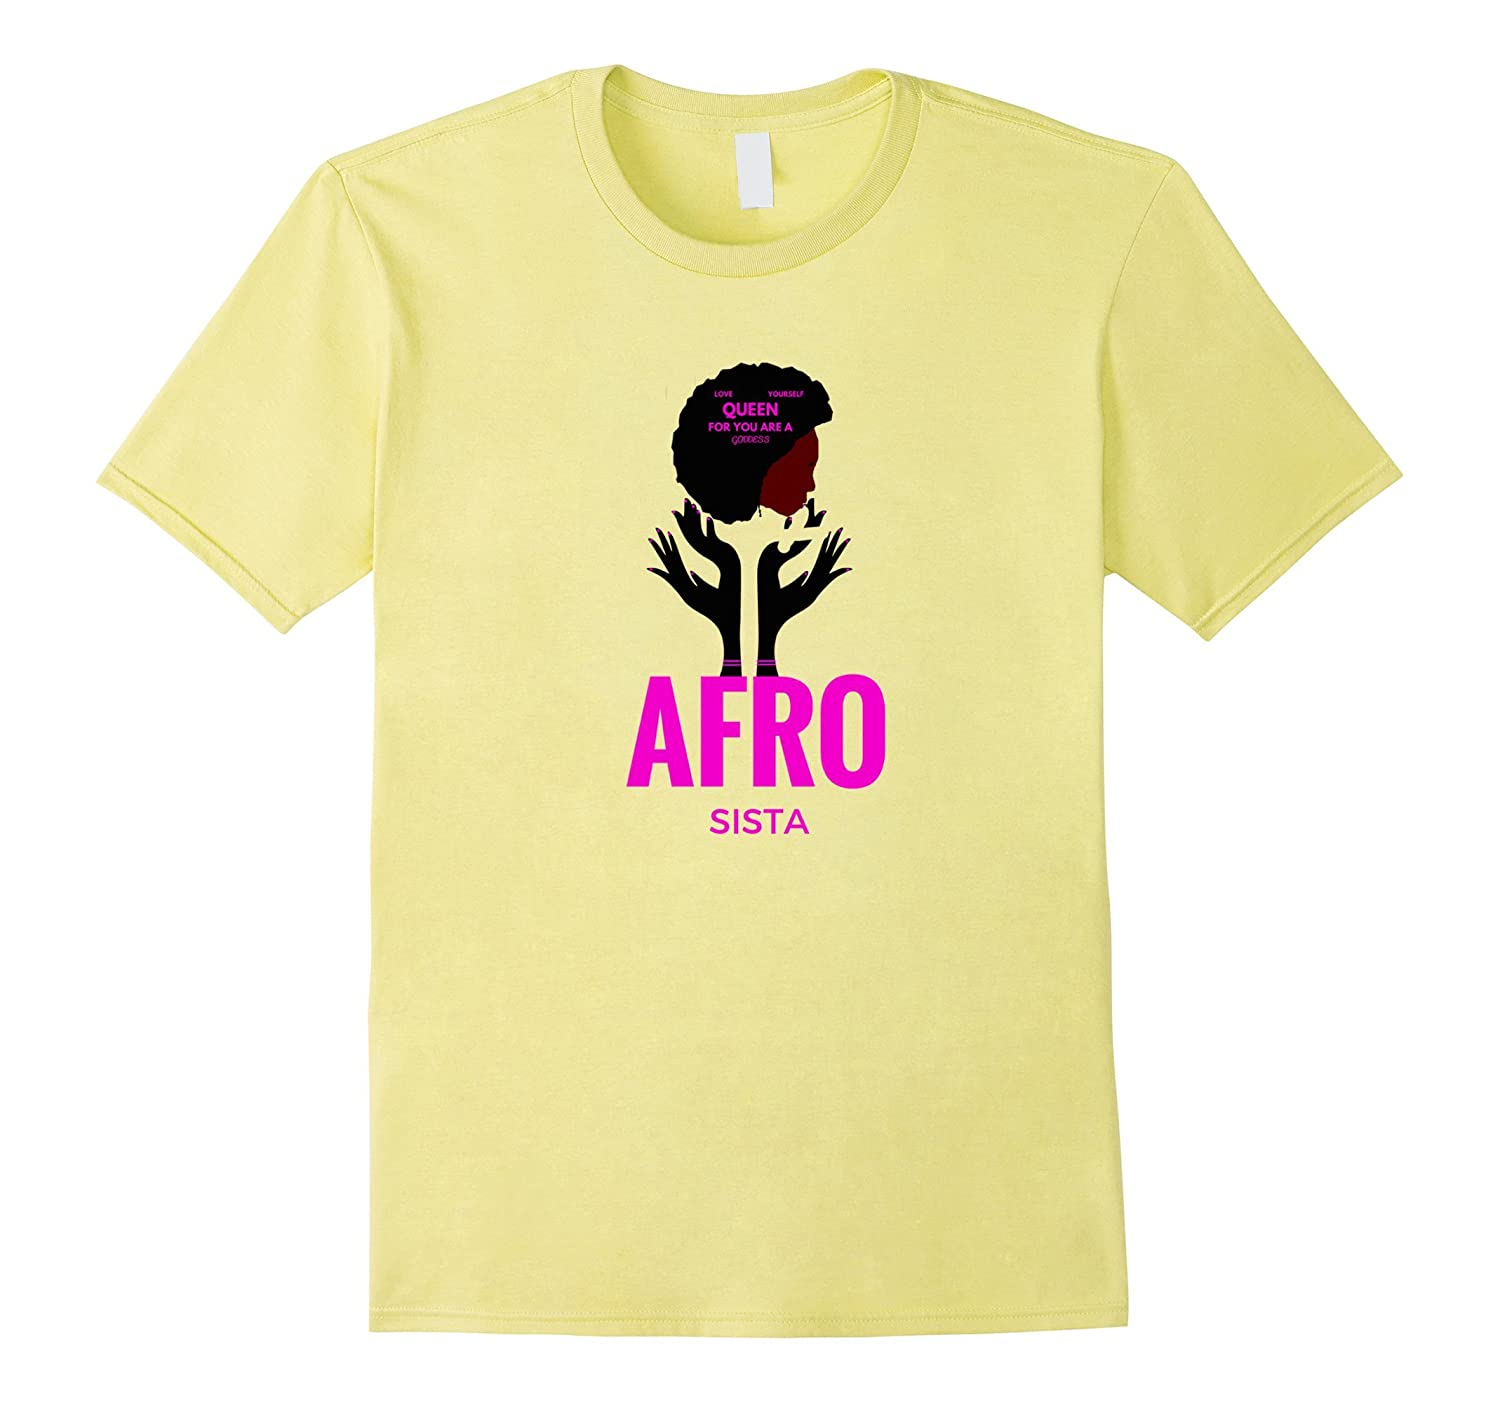 NATURAL SISTA UNISEX shirt Black Girl PRIDE Gift T shirts-FL